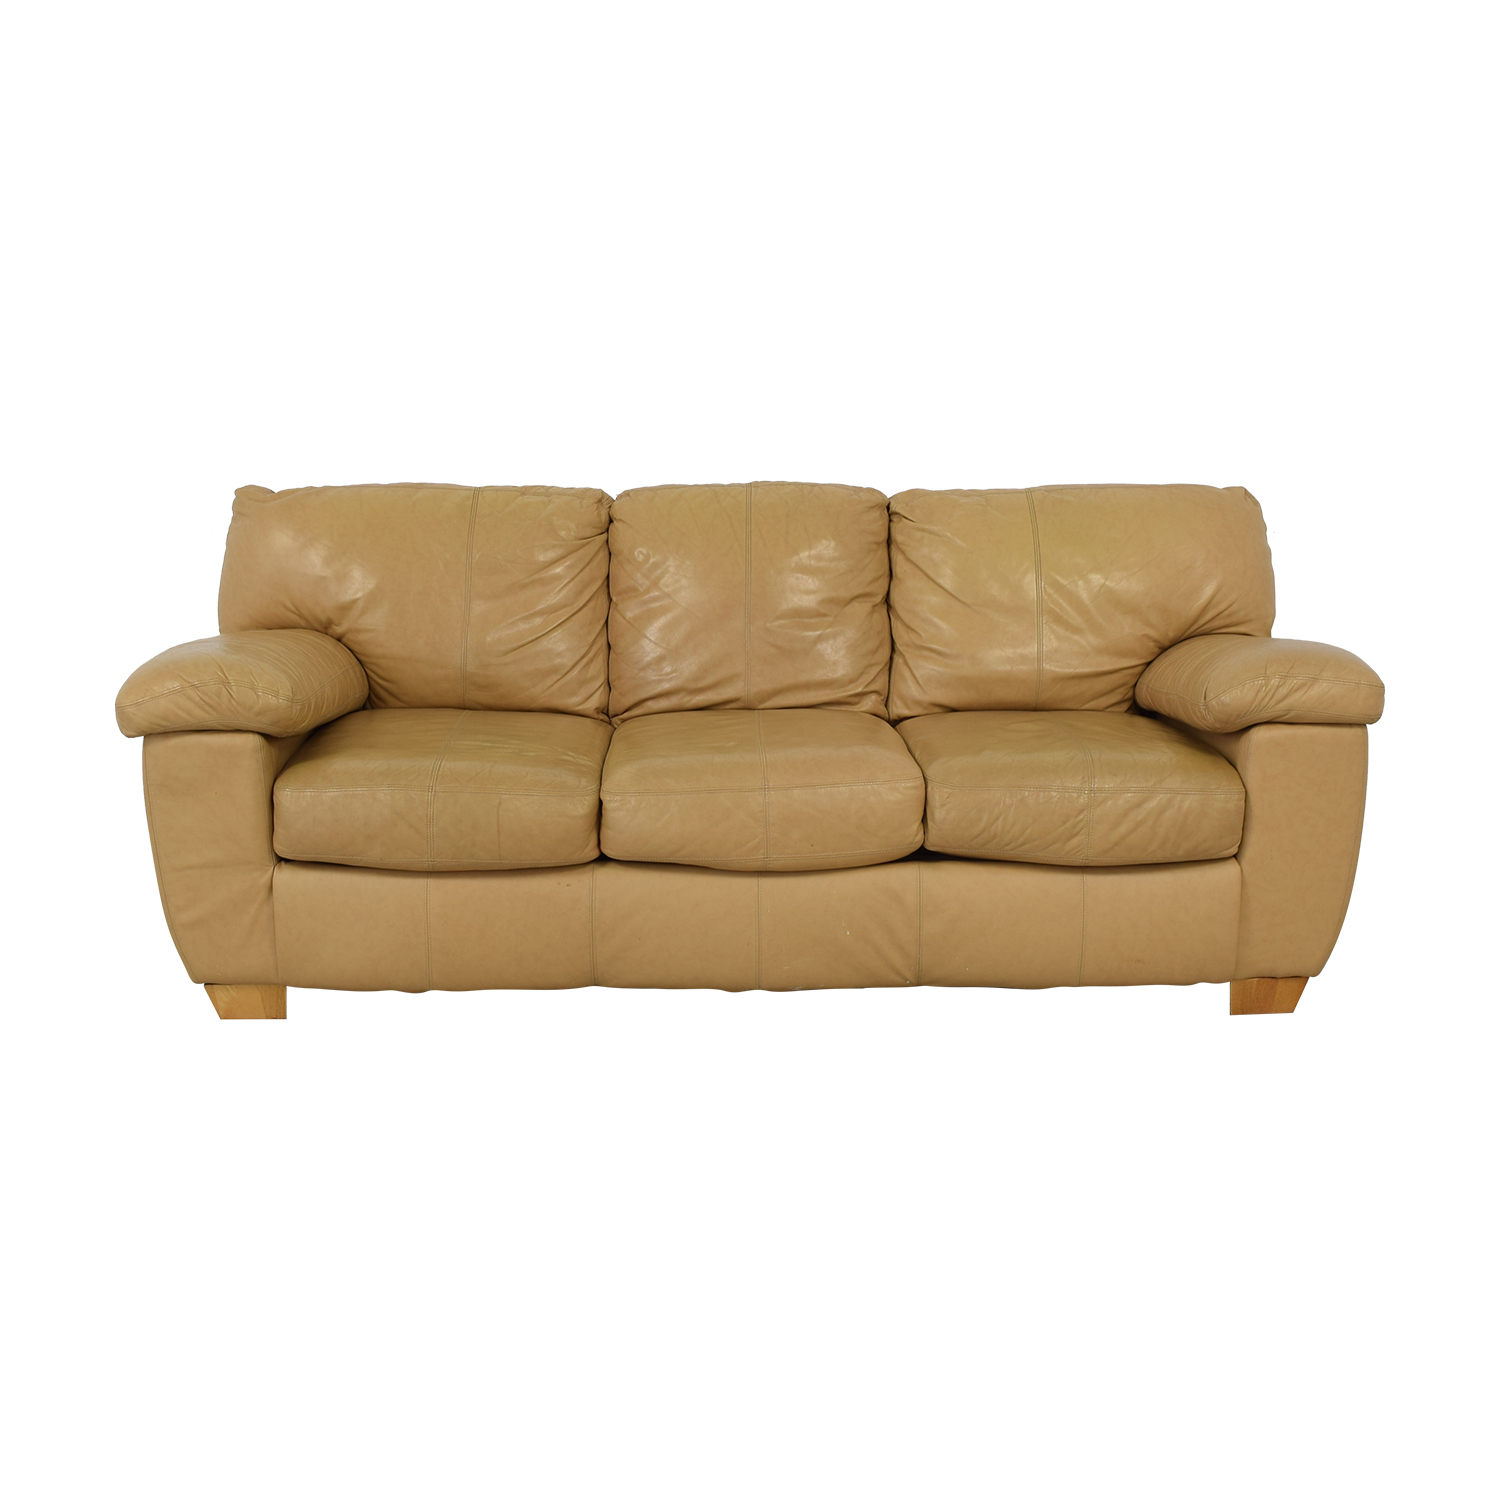 Ashley Furniture Three Cushion Sofa Ashley Furniture